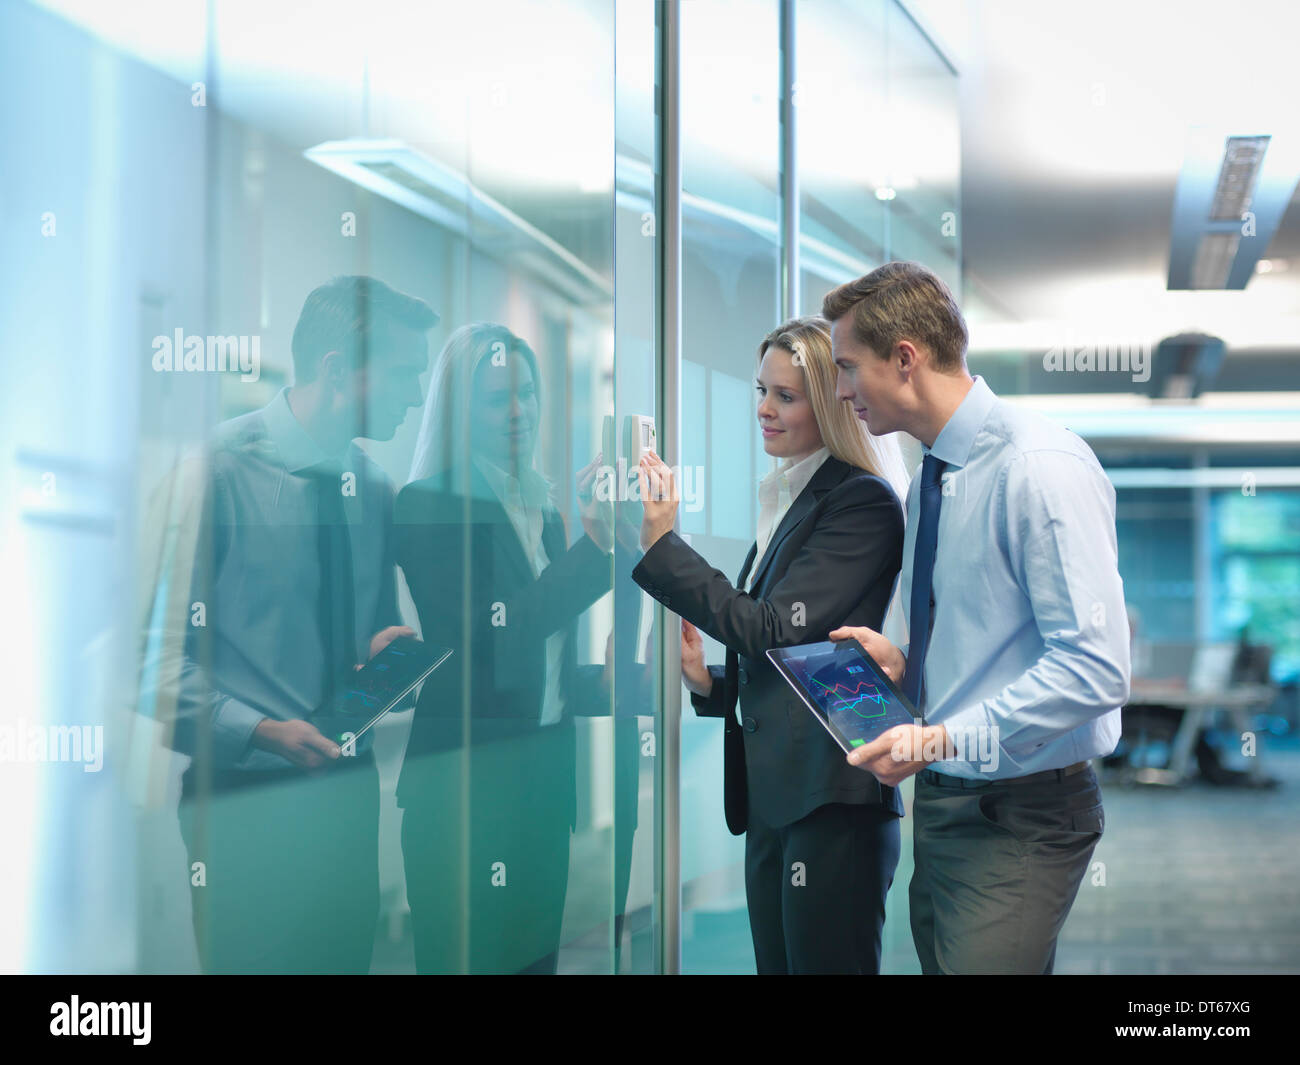 Office workers adjusting heating thermostat in modern workplace - Stock Image